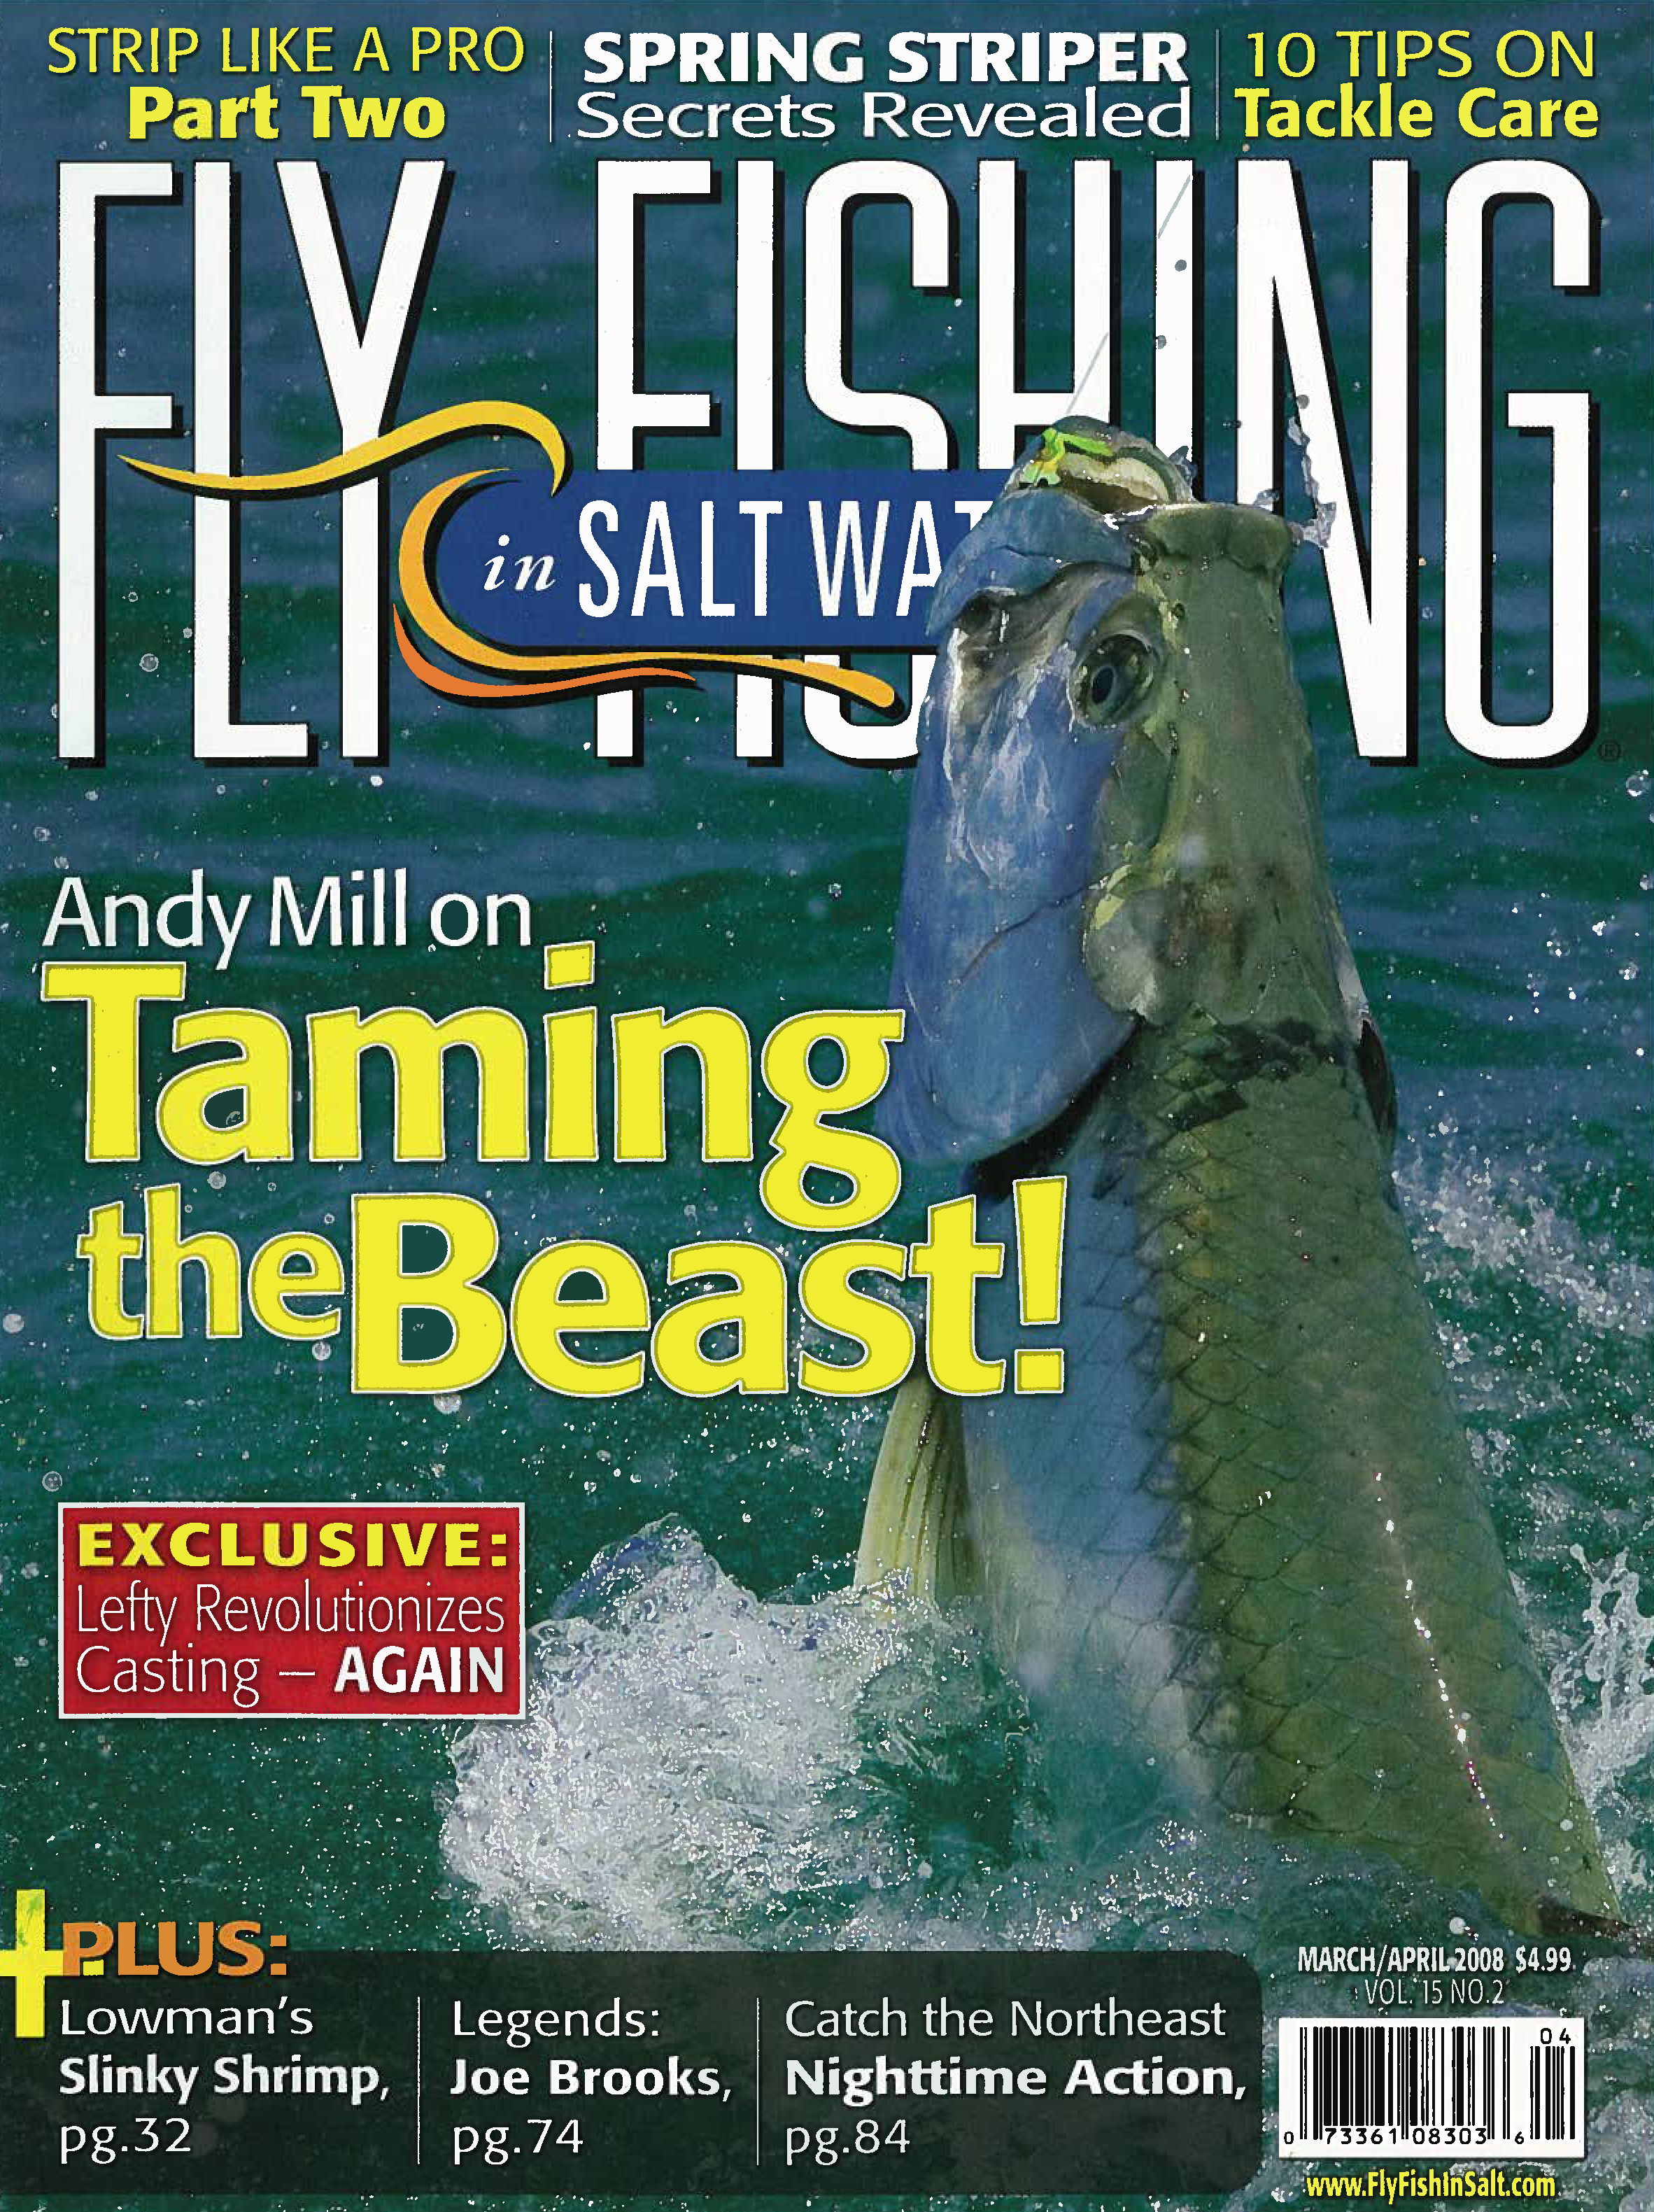 march-april 2008 cover.jpg